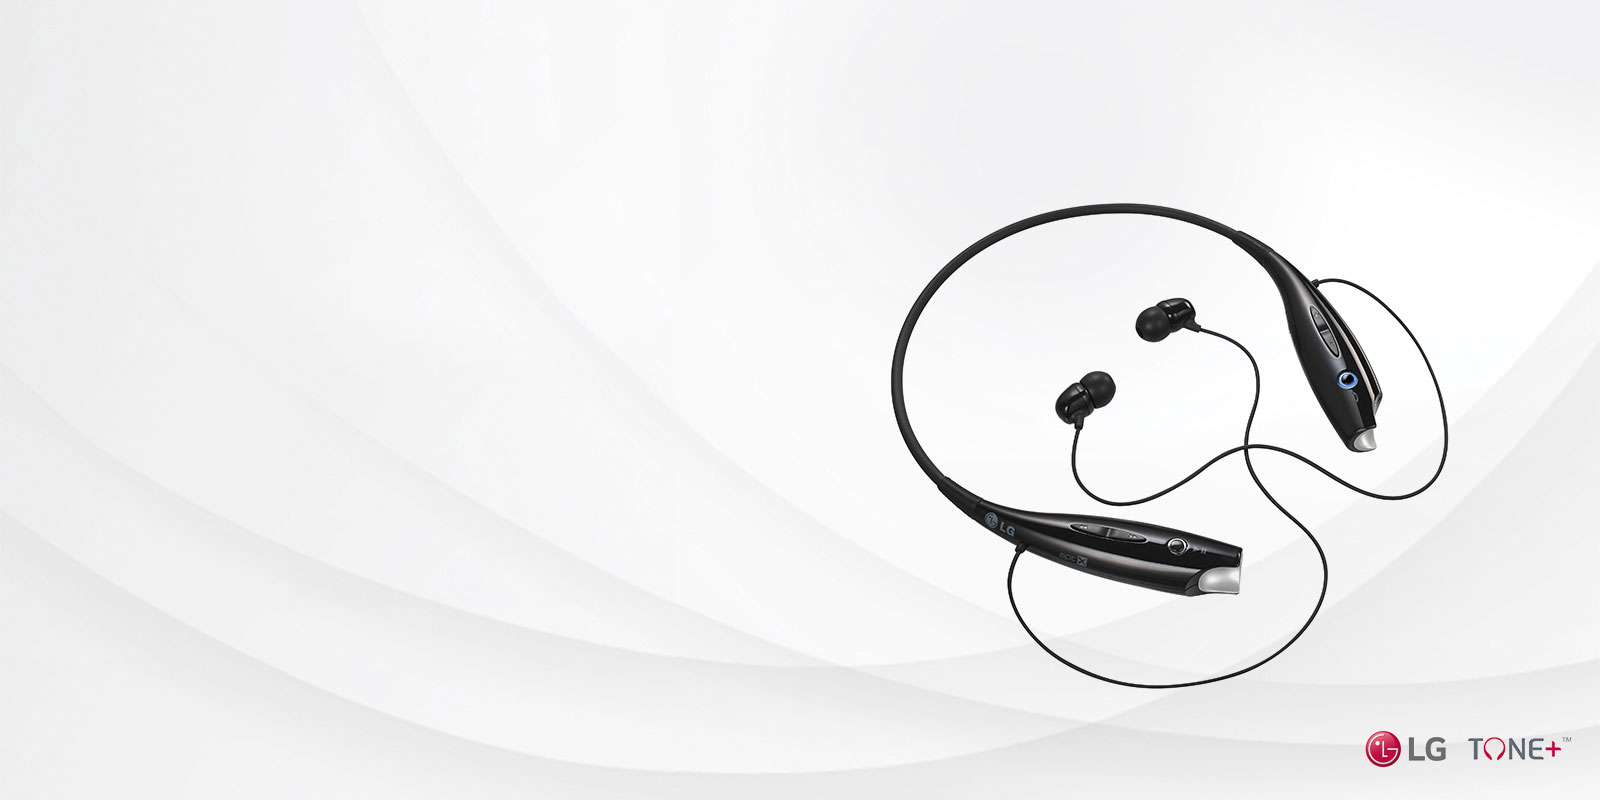 Mobile Accessories: Find LG Mobile Phone Accessories | LG UAE